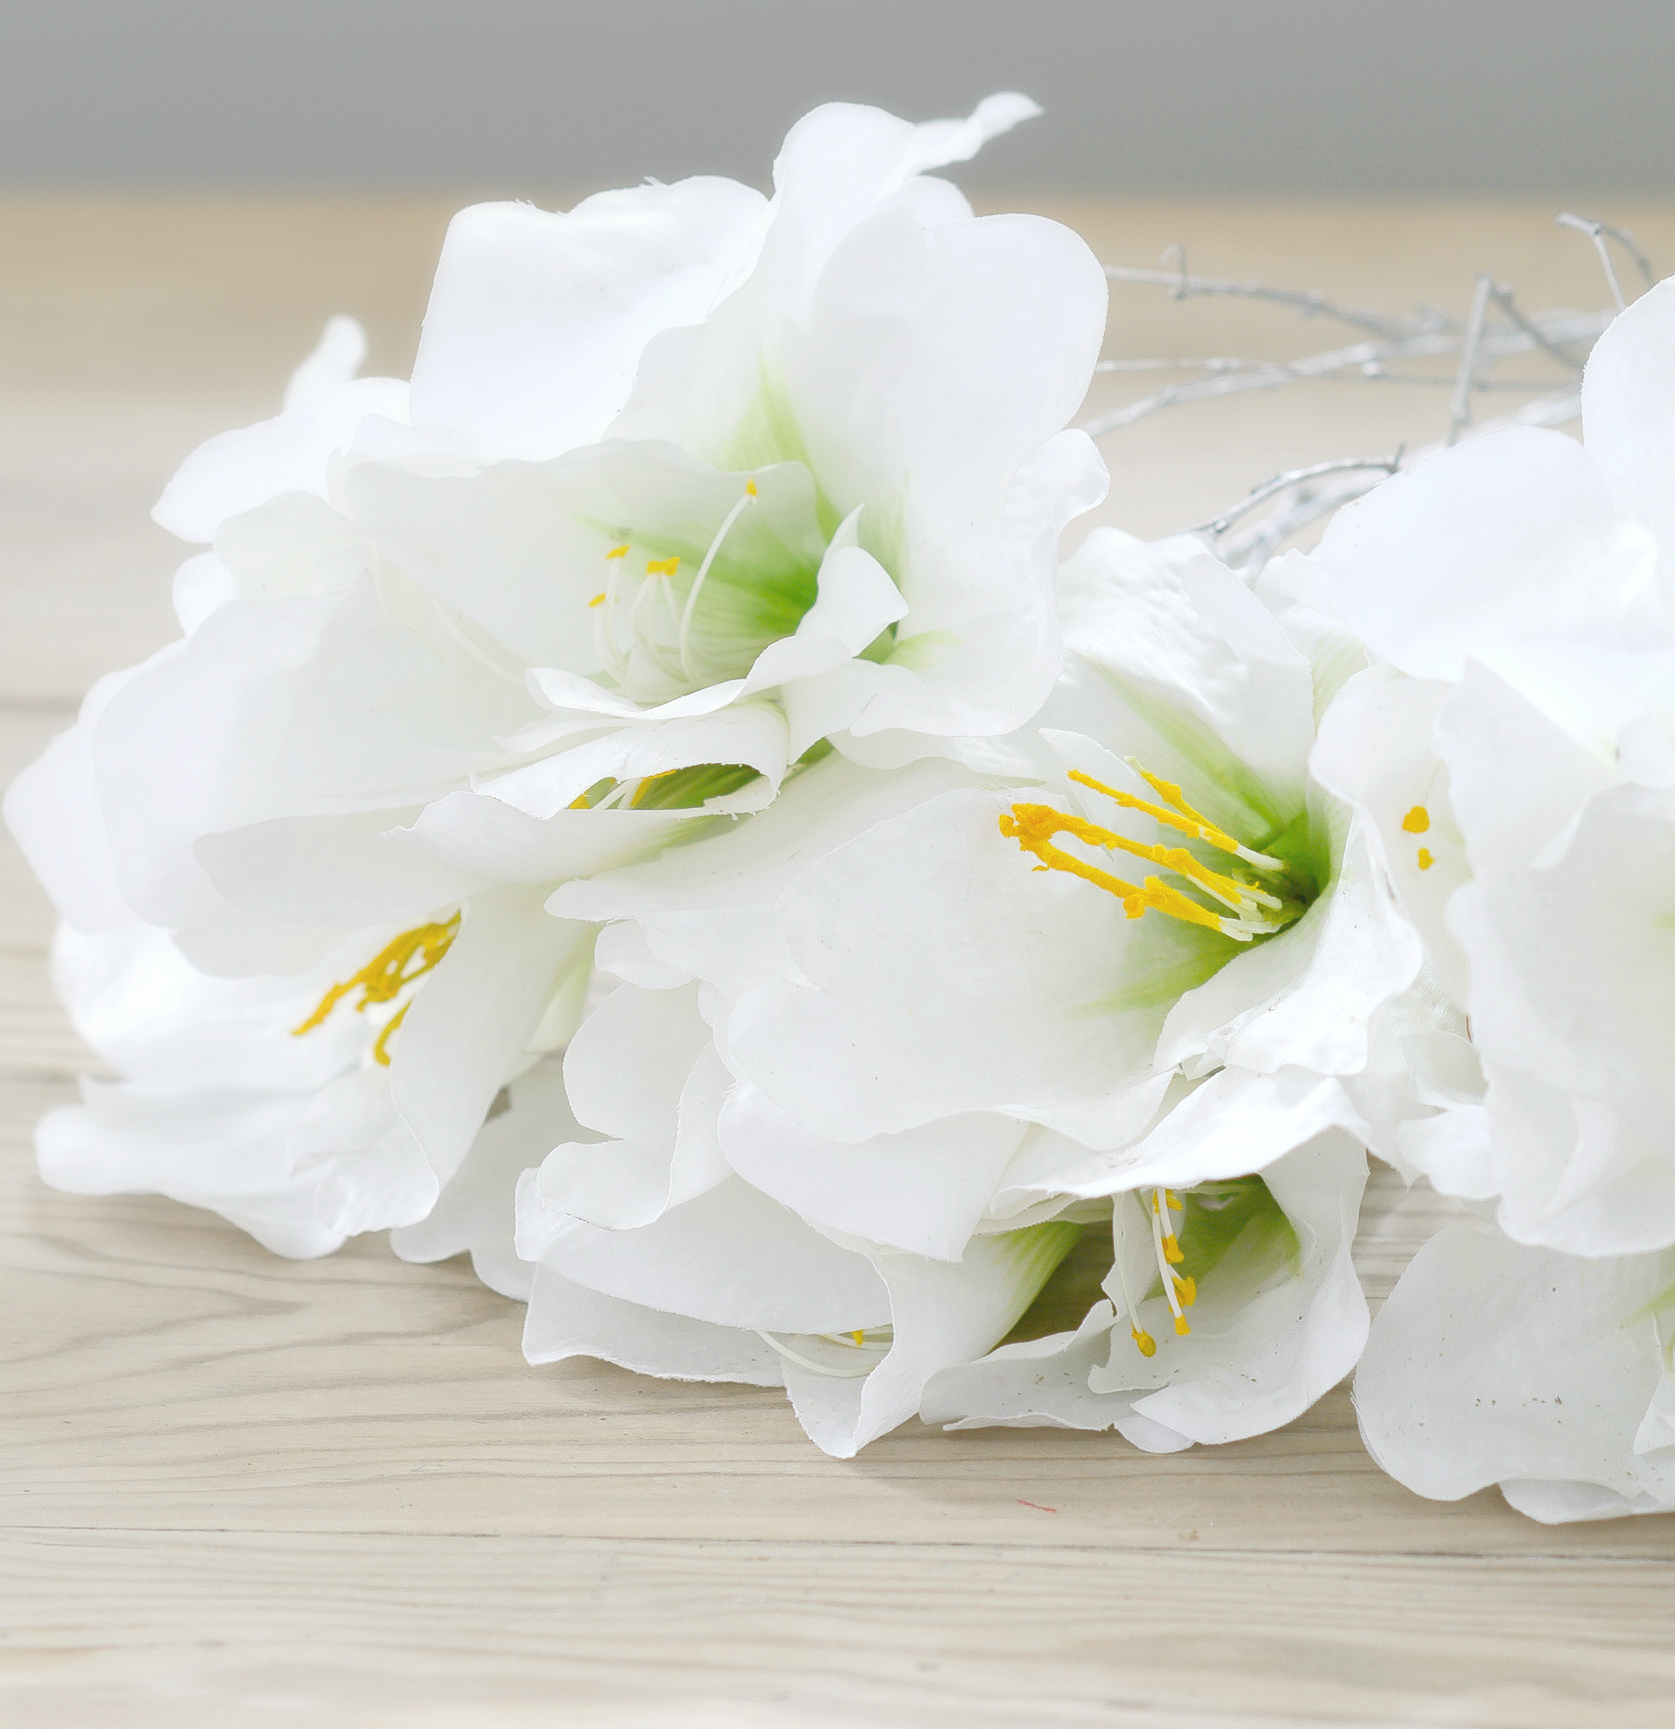 White Flowers Order Fresh White Flowers And Plants Online Flower